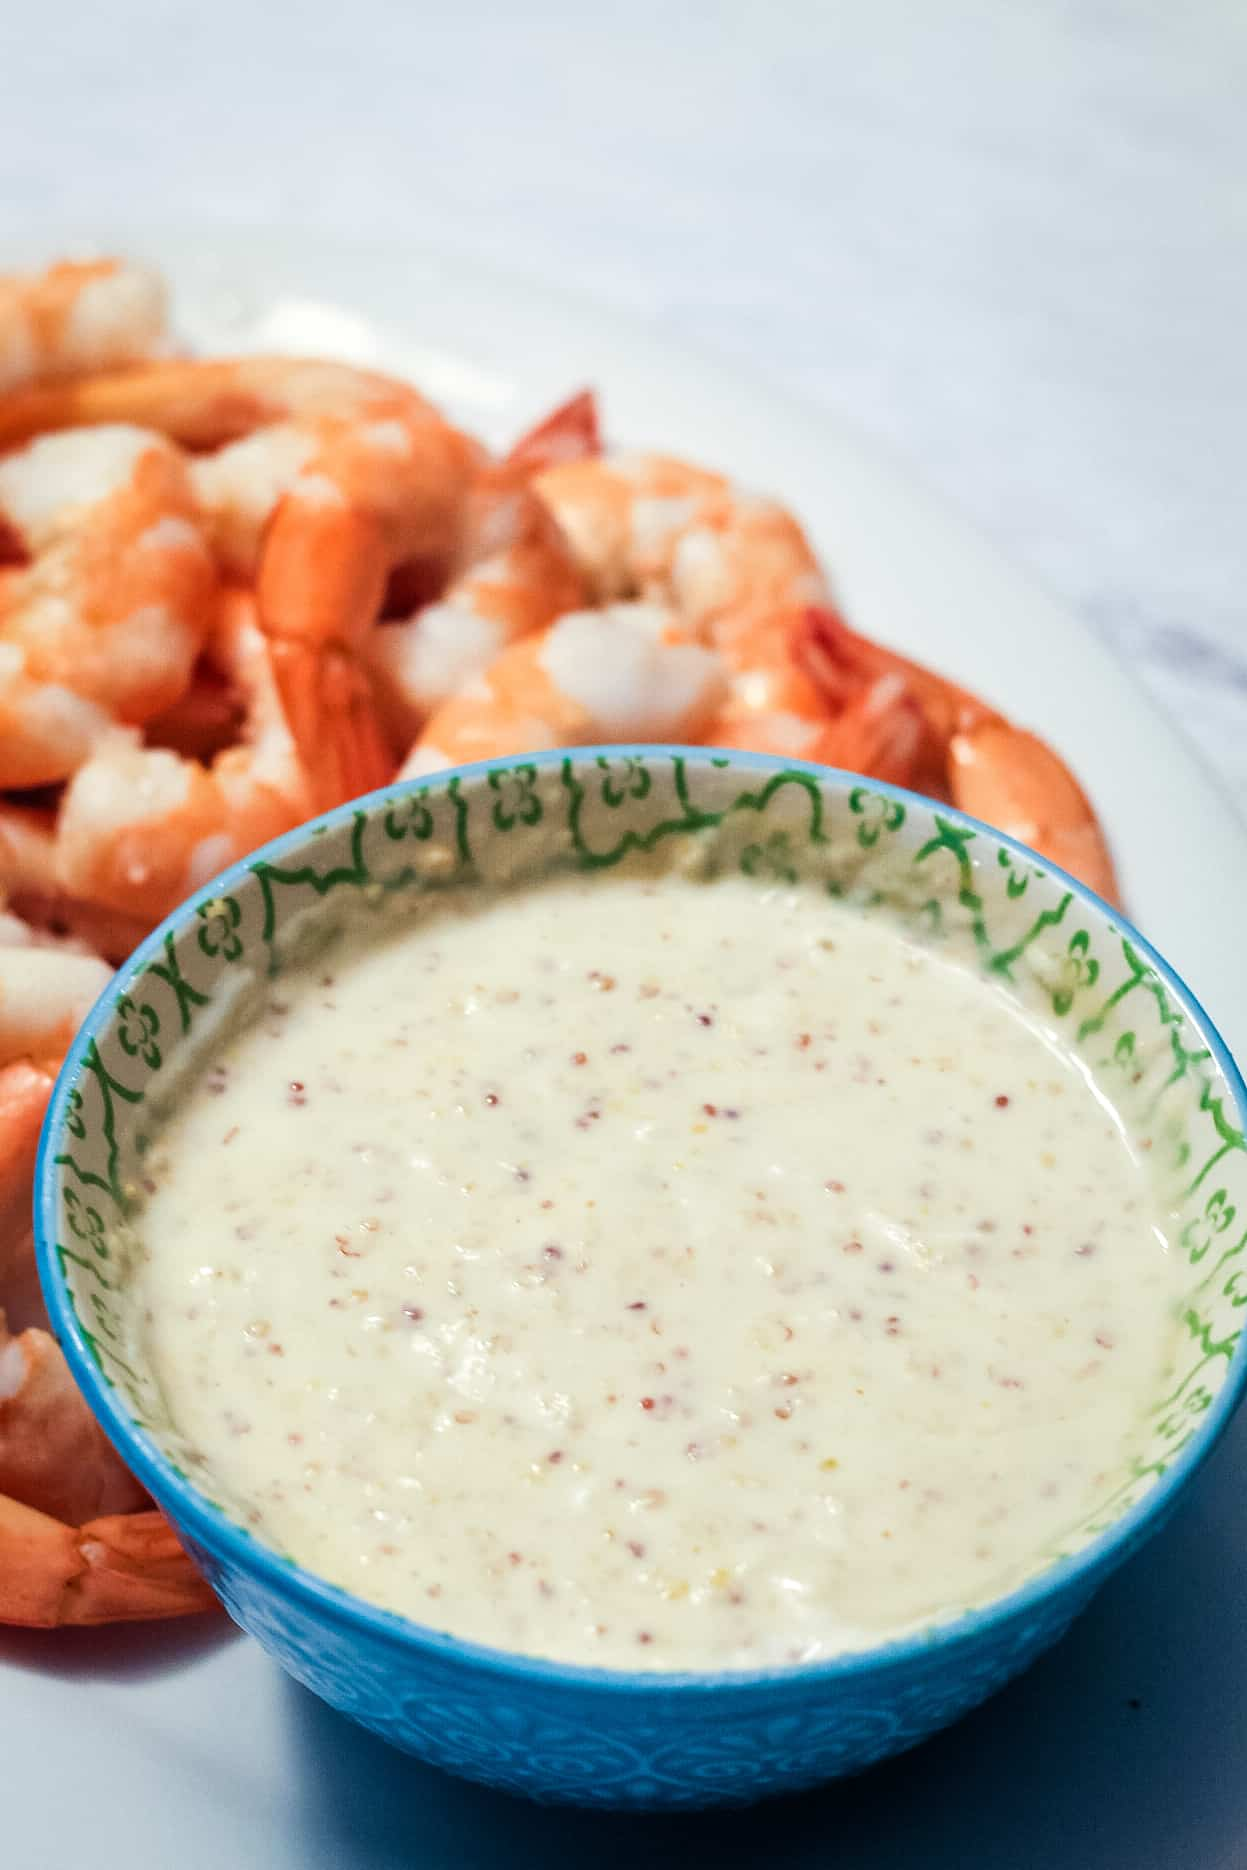 Cold Horseradish dip in a blue bowl with shrimp